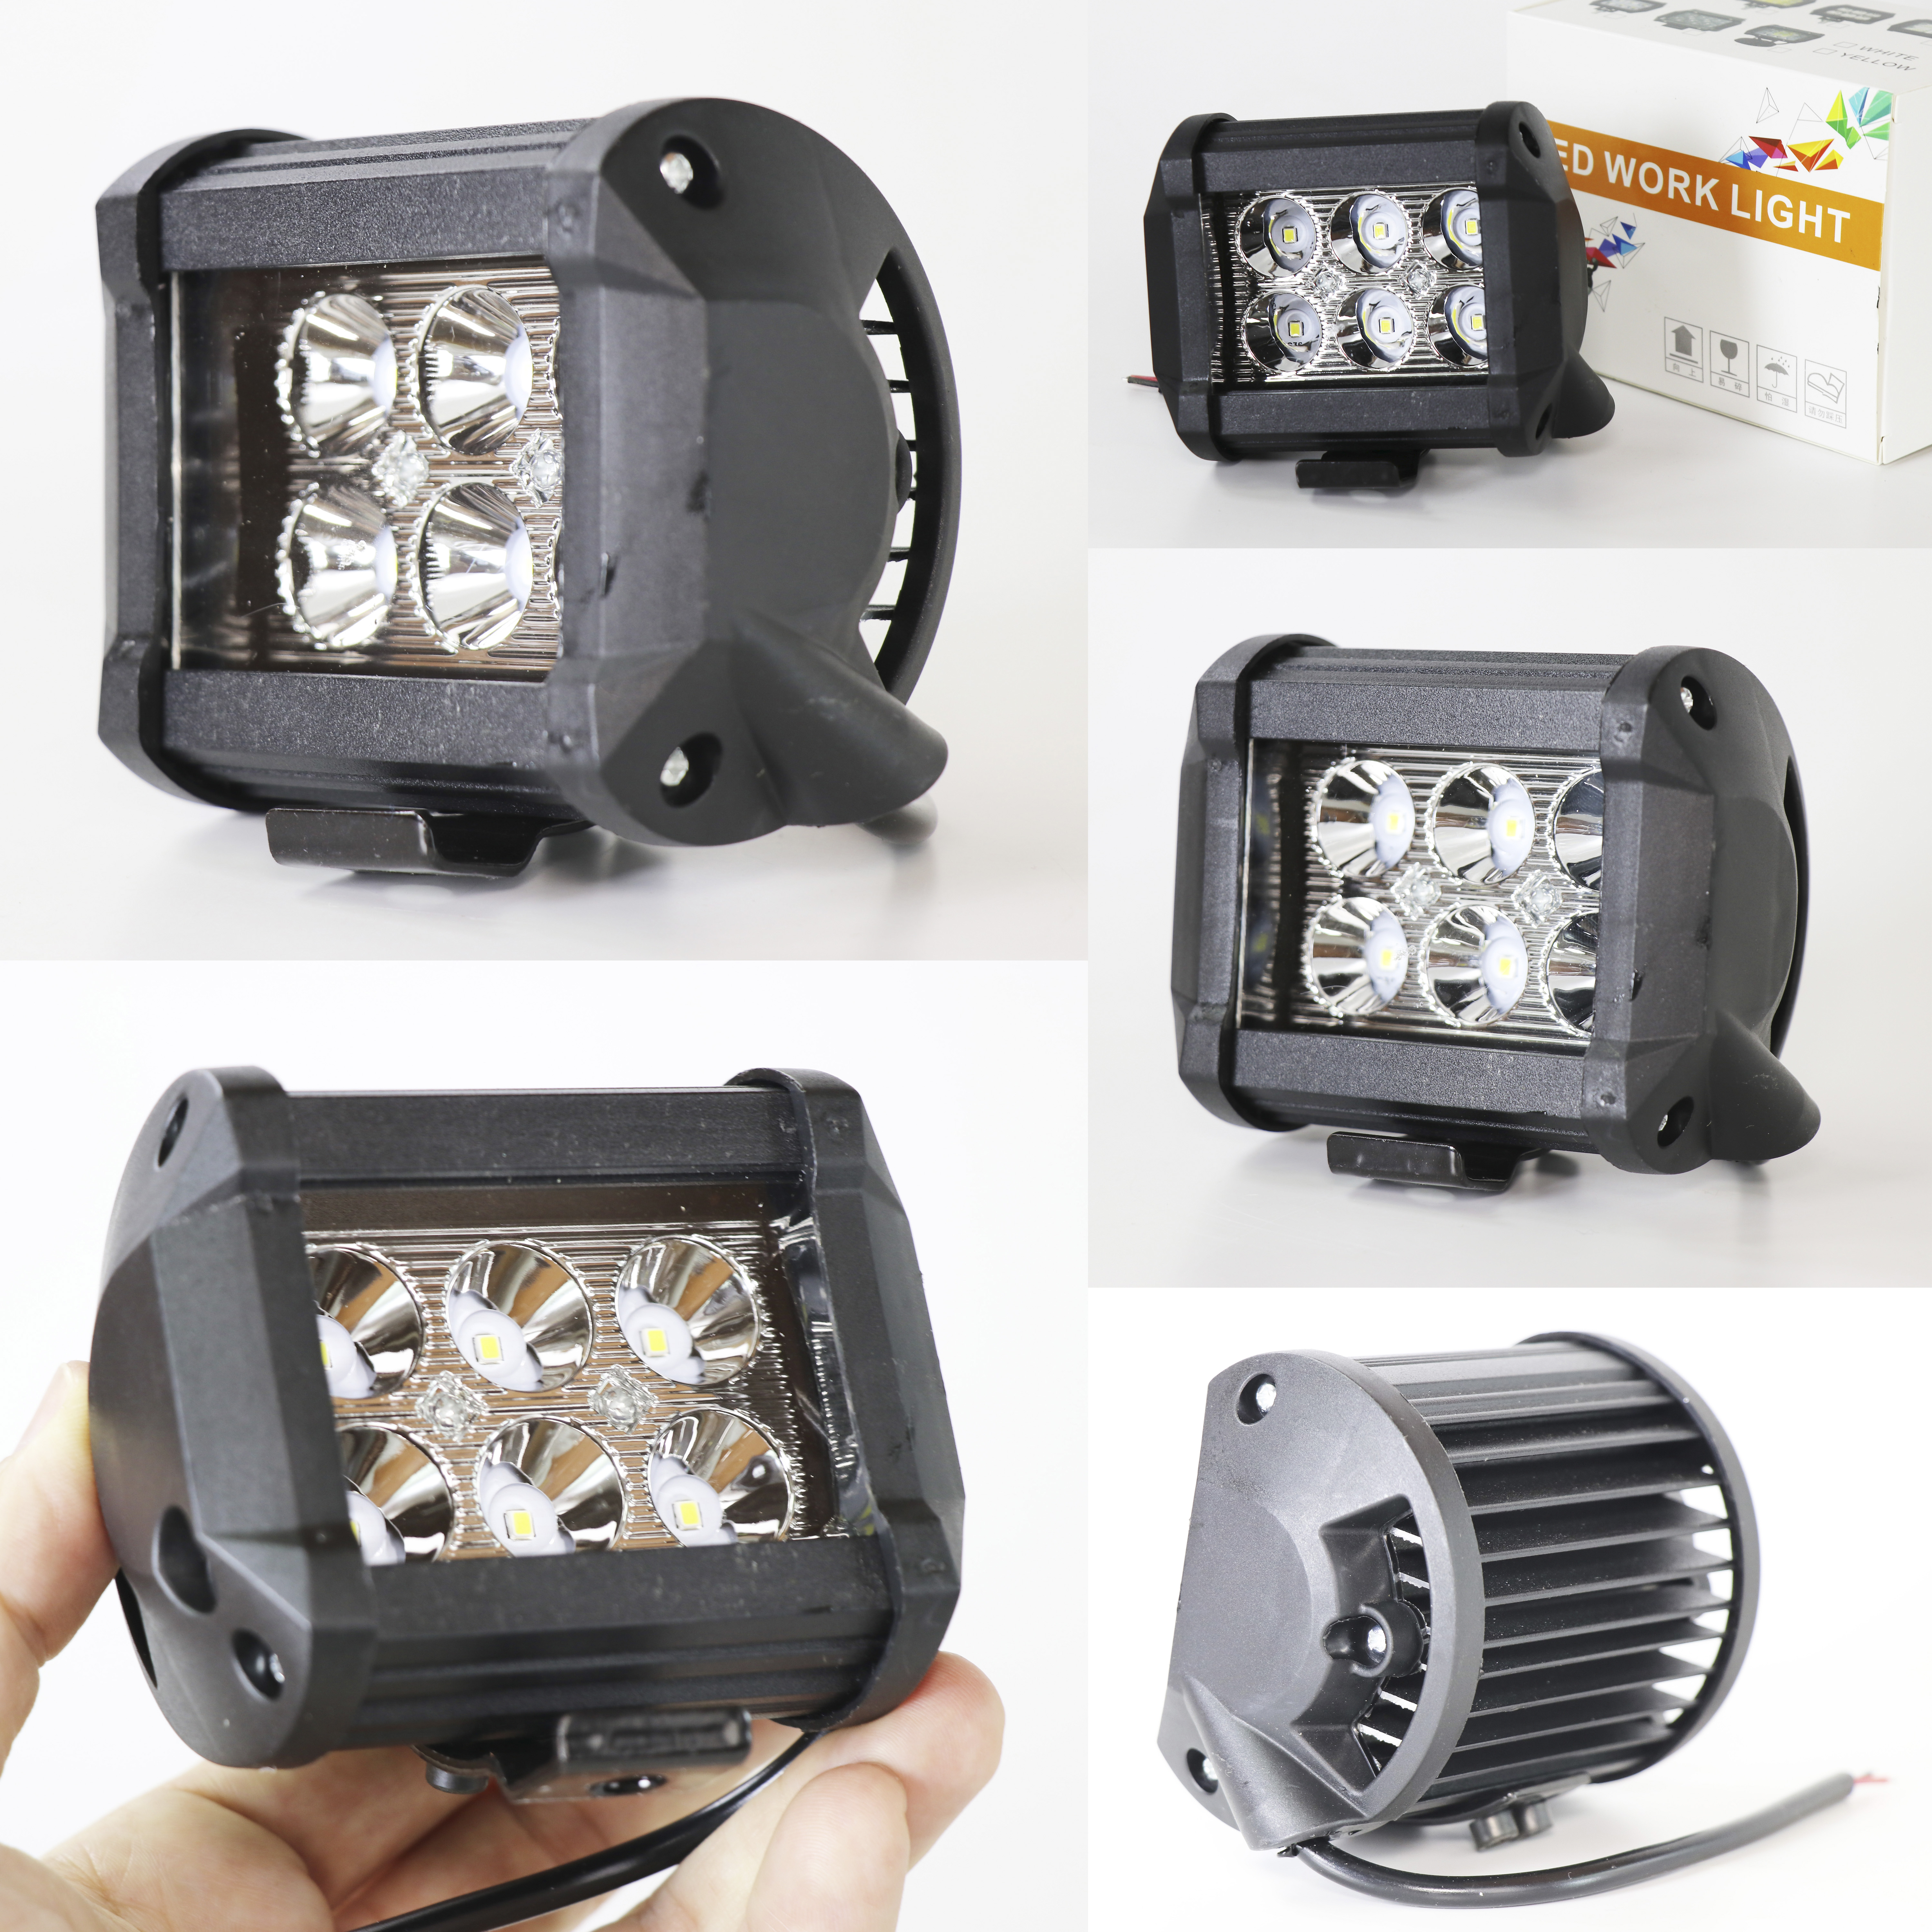 ELG REFLECTOR 18W 6LED 6D PARAGRAPH MYL 18W 6LED 6D